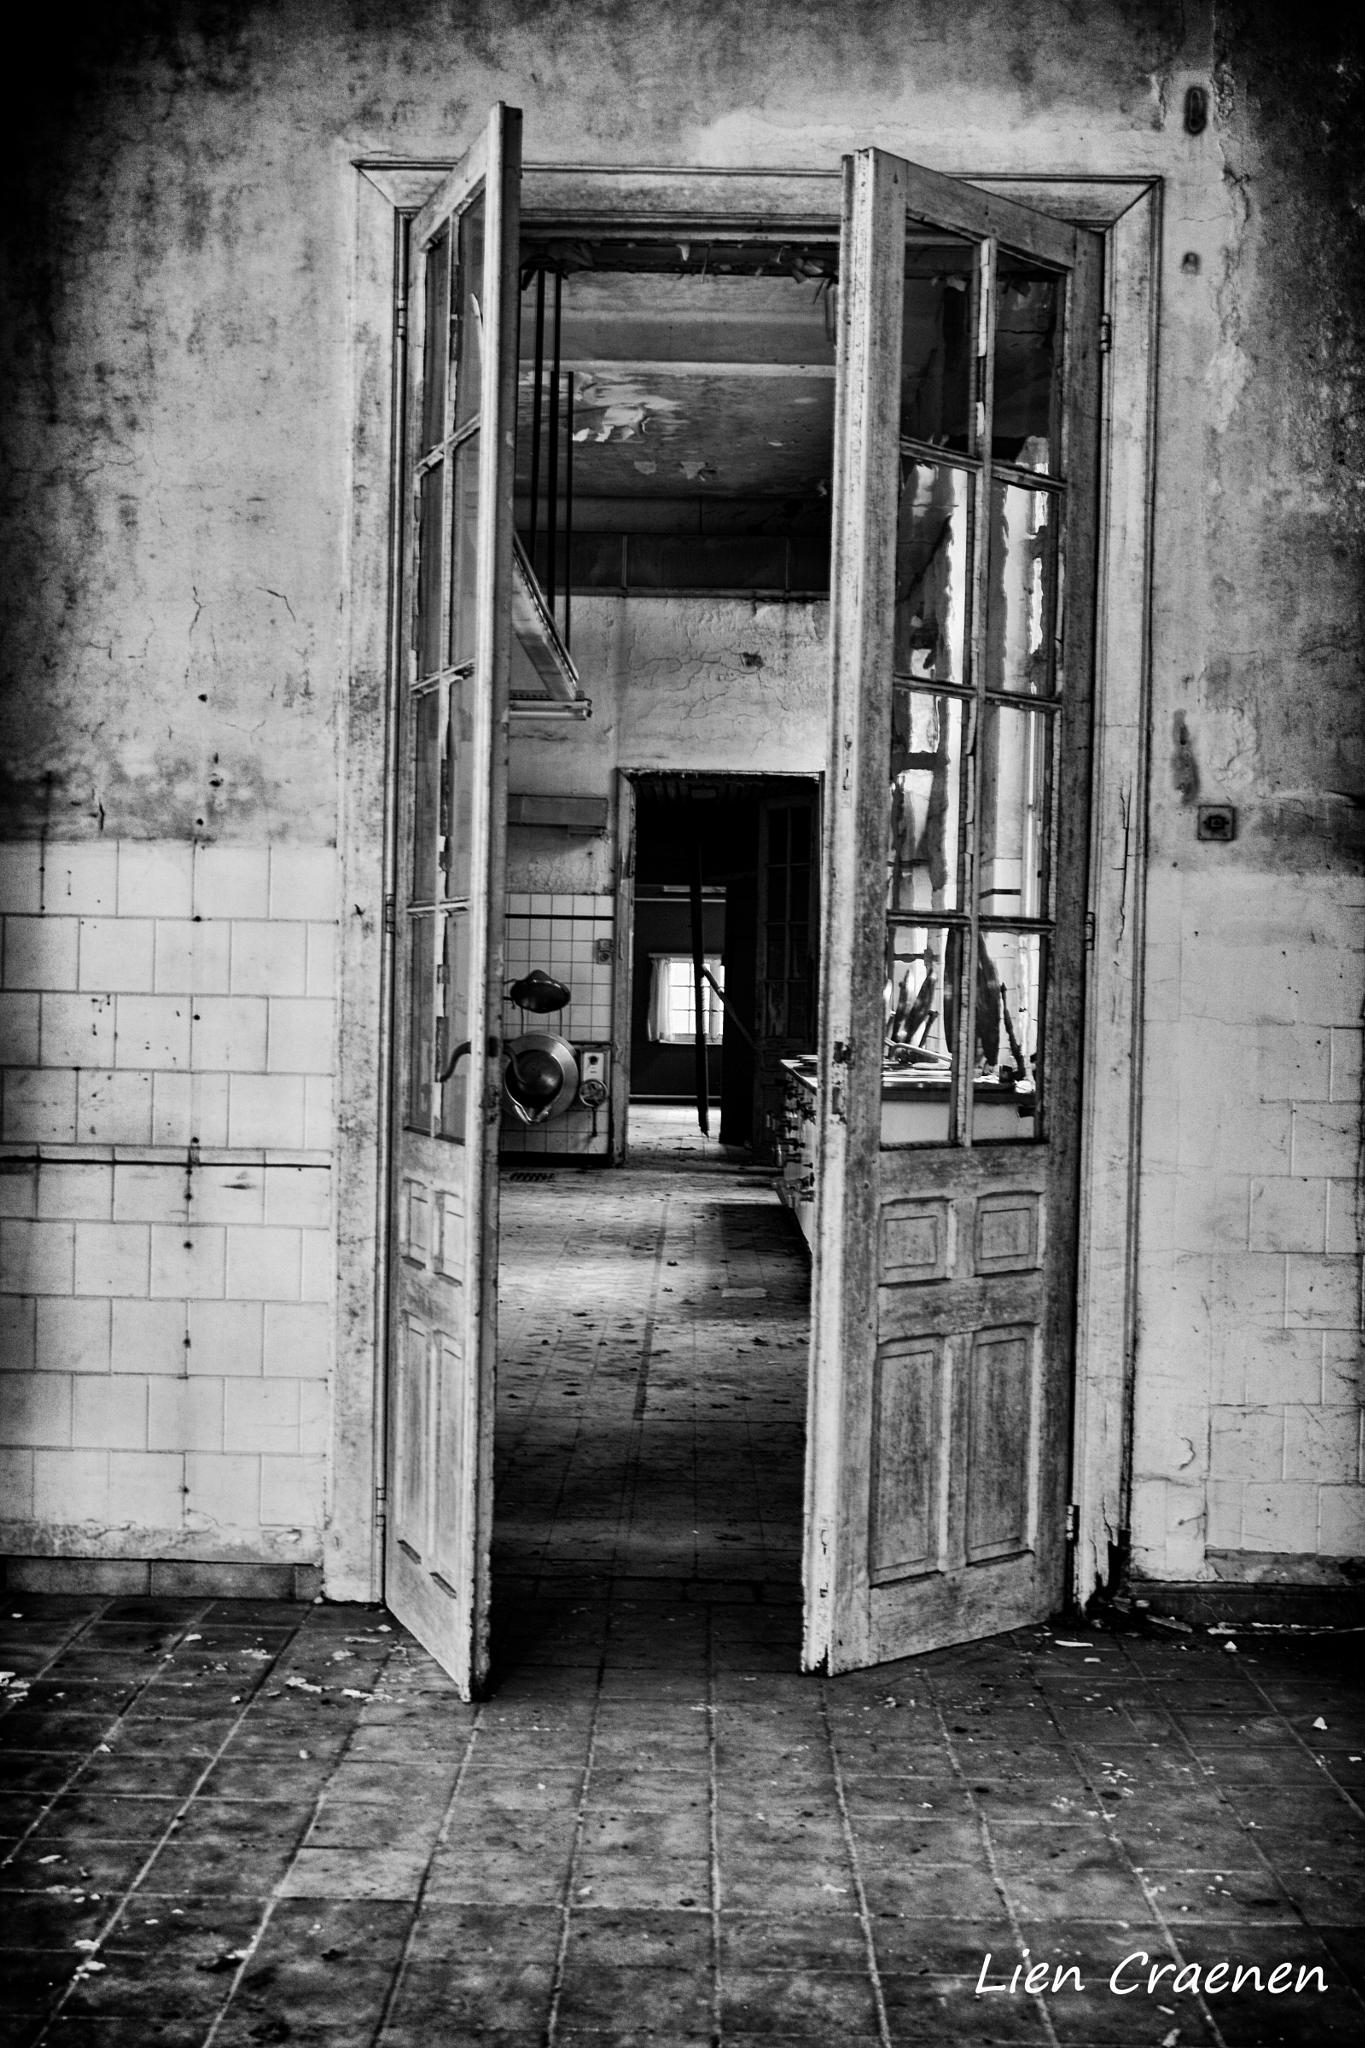 See through the doors by Lien Craenen